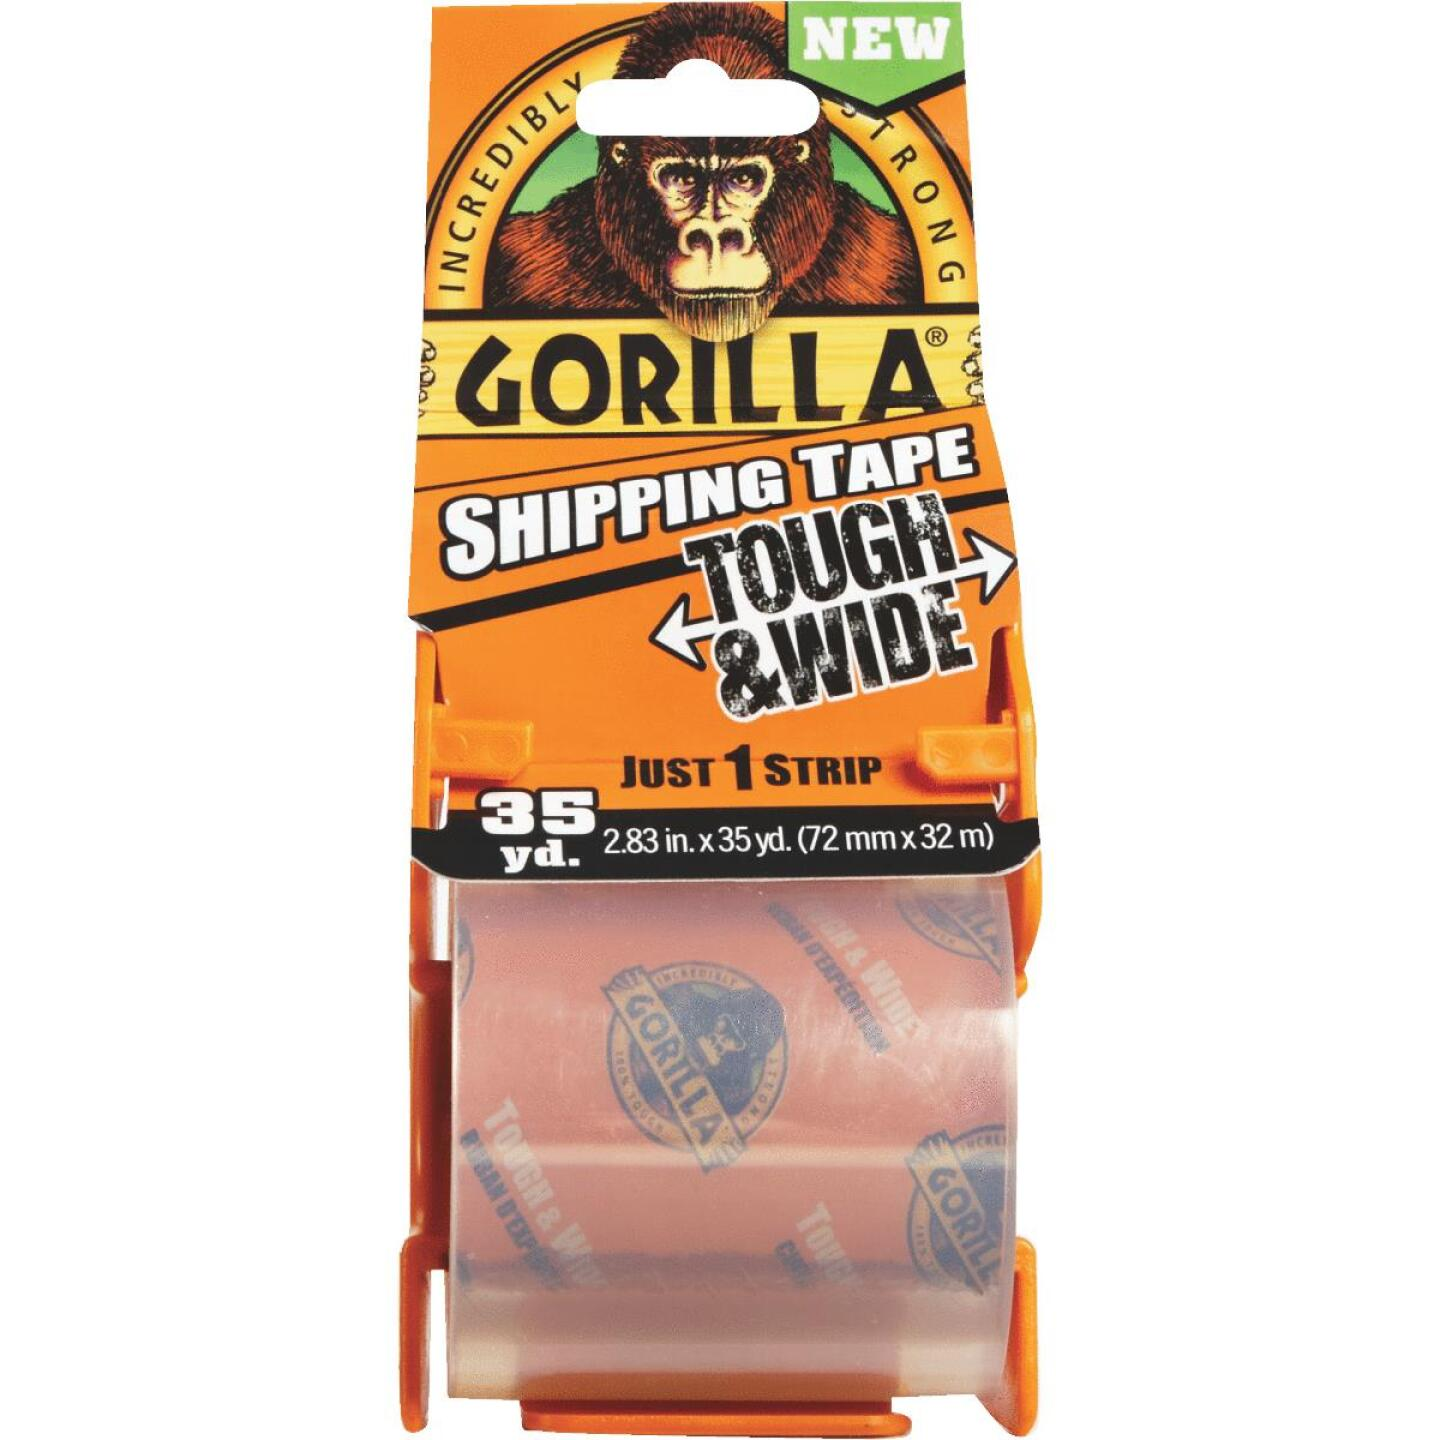 Gorilla 2.83 In. W. x 35 Yd. L. Clear Shipping Tape Image 2